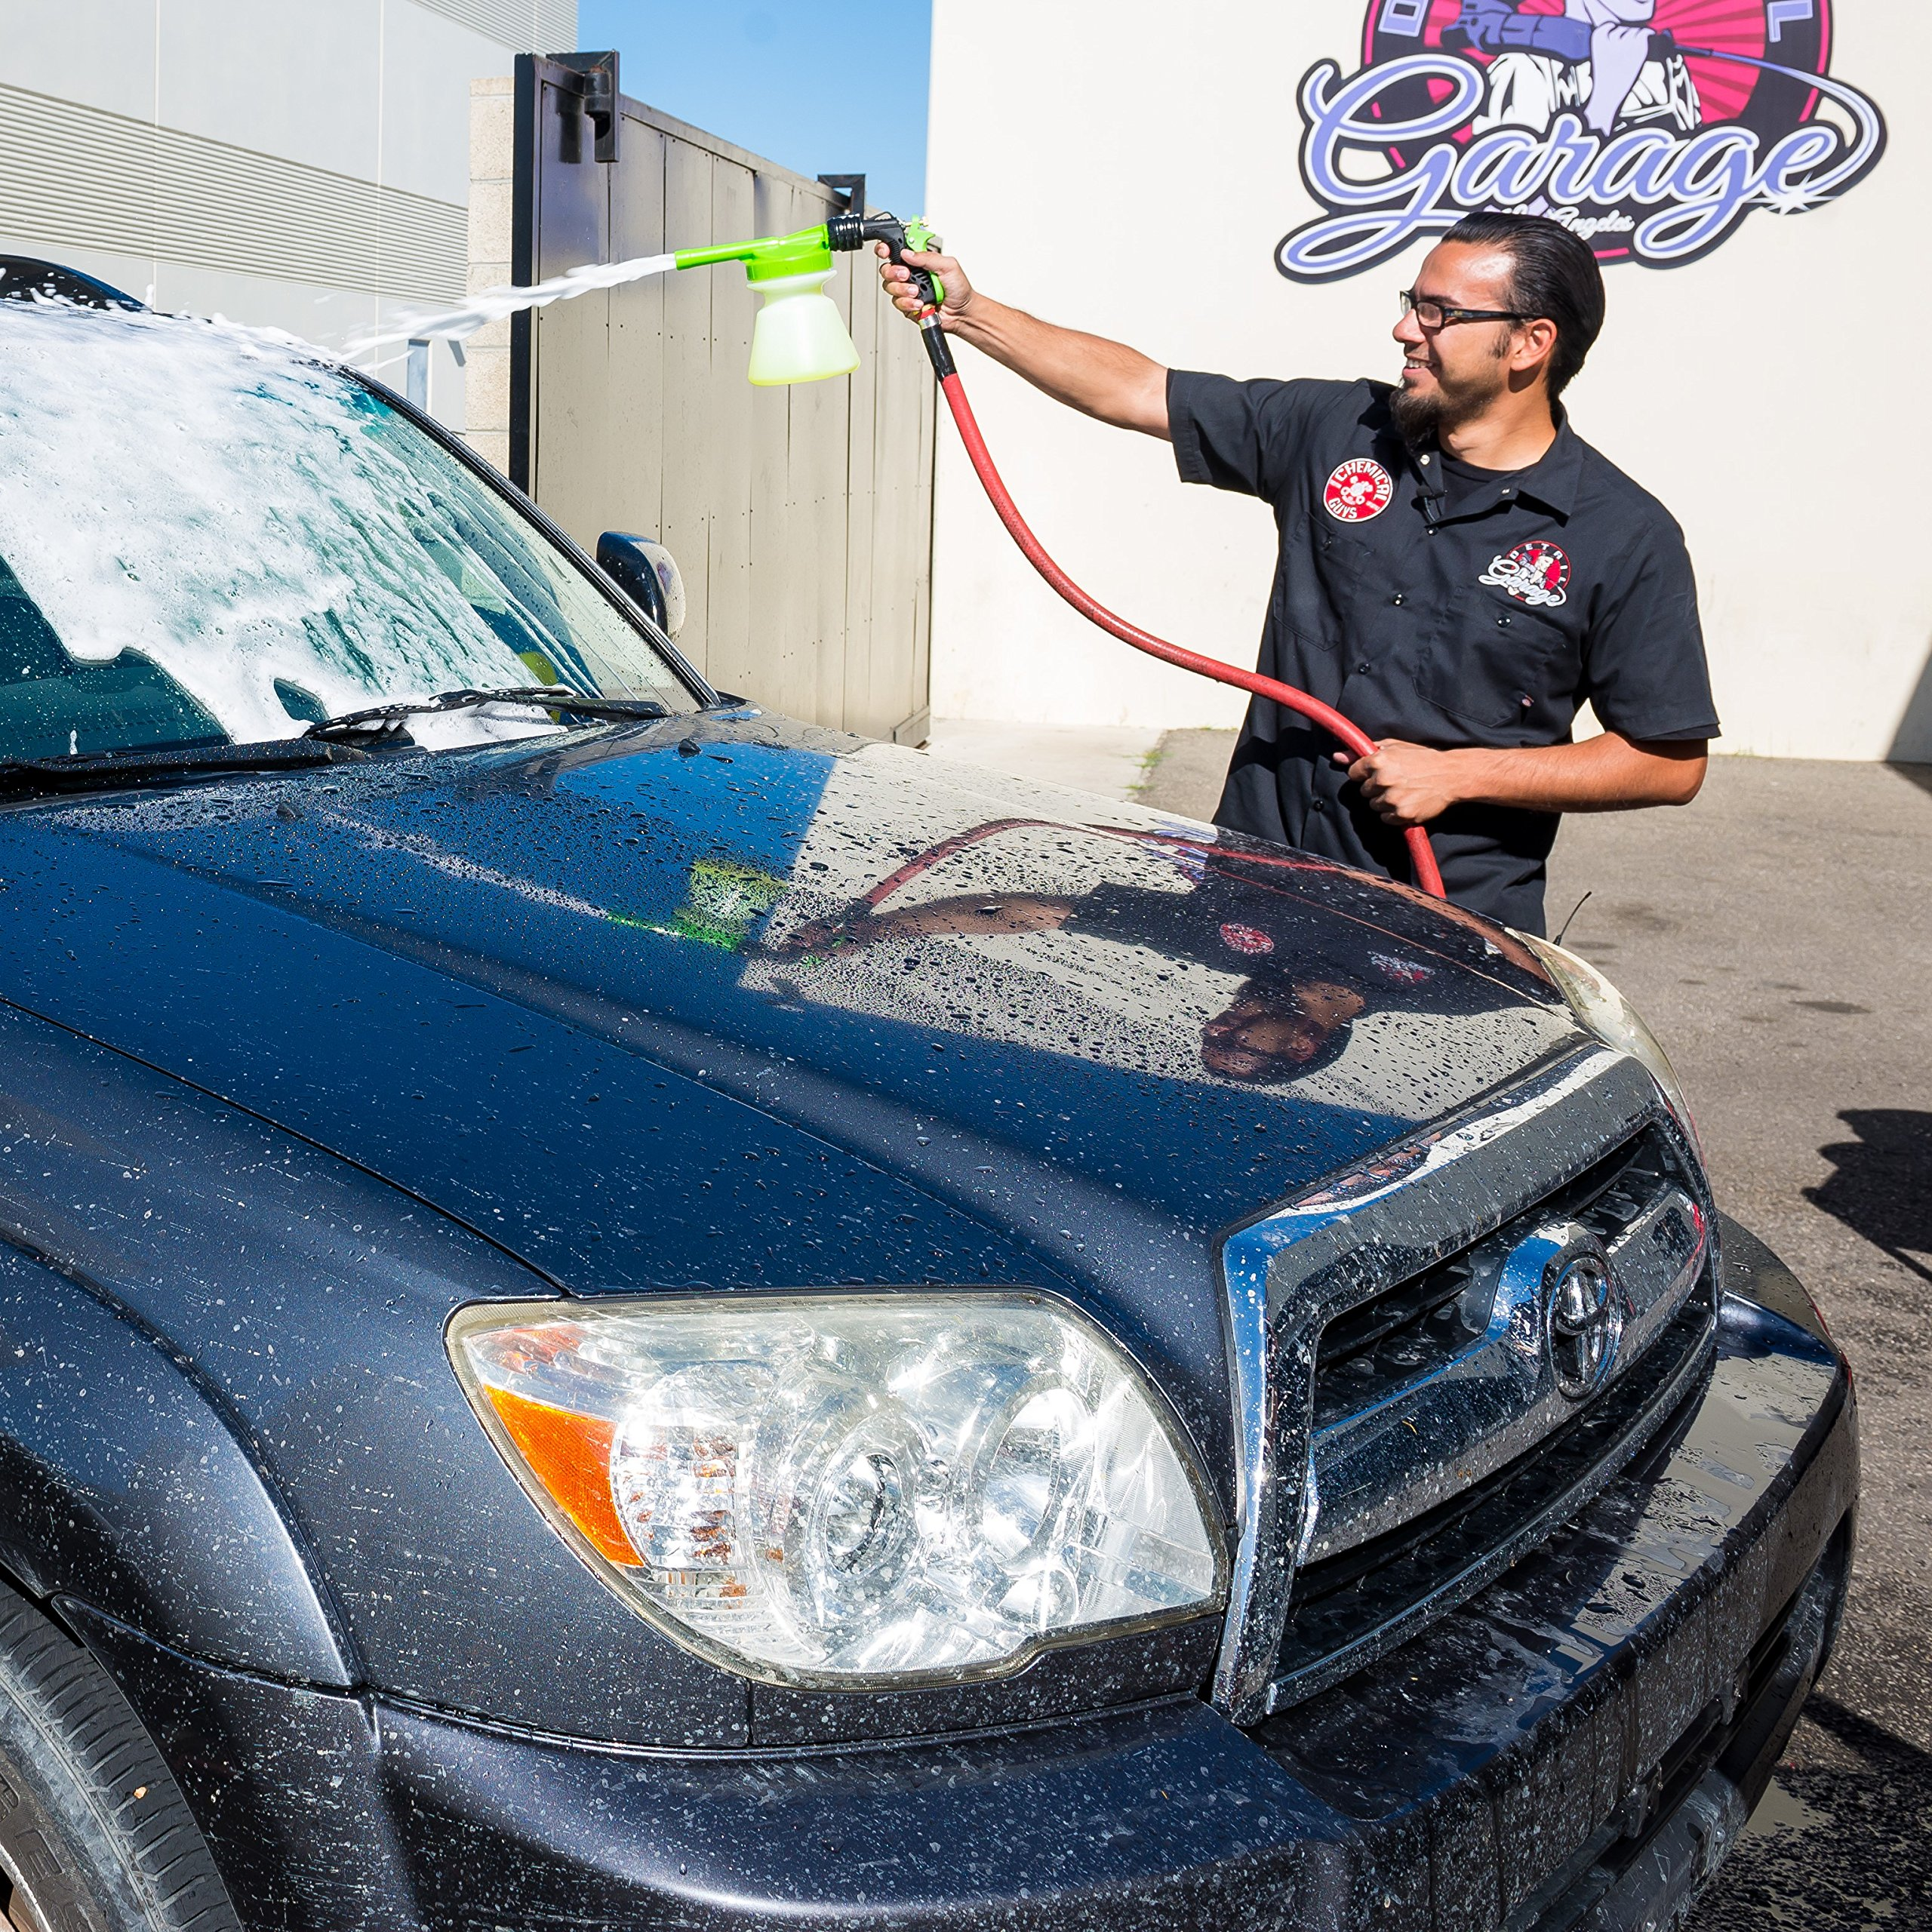 Chemical Guys EQP348 TORQ Snow Foam R1 & Tough Mudder Truck Wash, 16. Fluid_Ounces by Chemical Guys (Image #8)